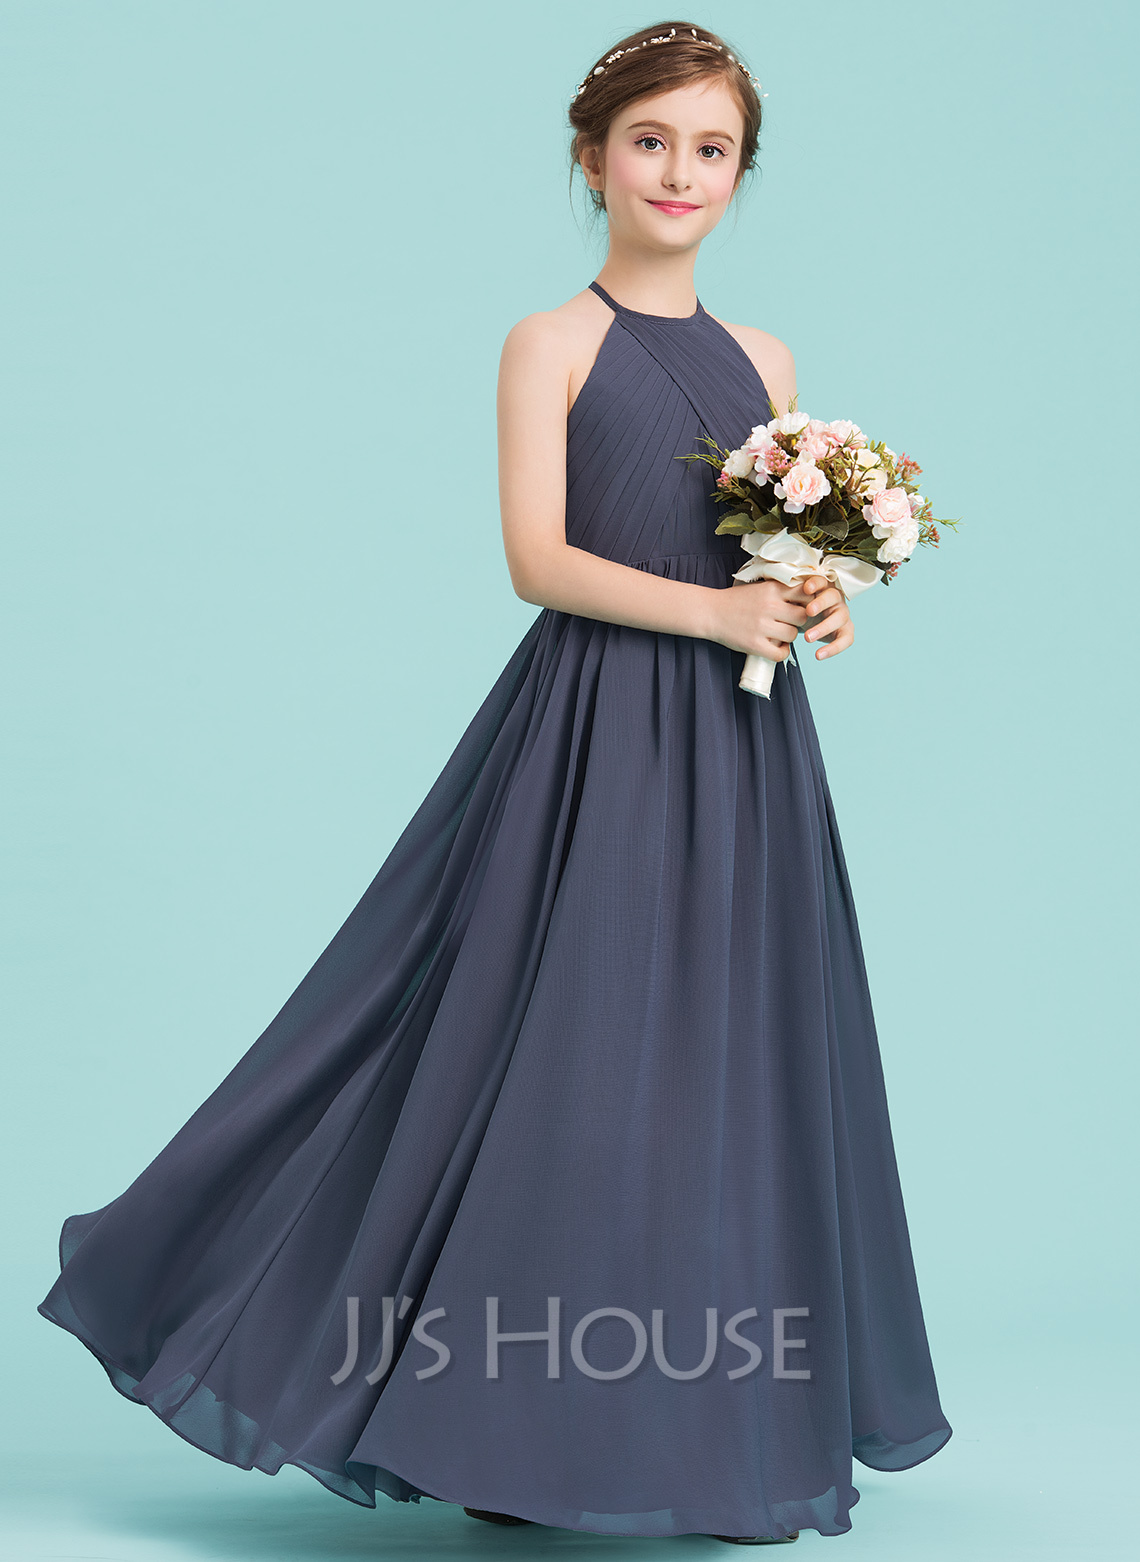 35b39a0f997 A-Line Princess Scoop Neck Floor-Length Chiffon Junior Bridesmaid Dress  With Ruffle. Loading zoom